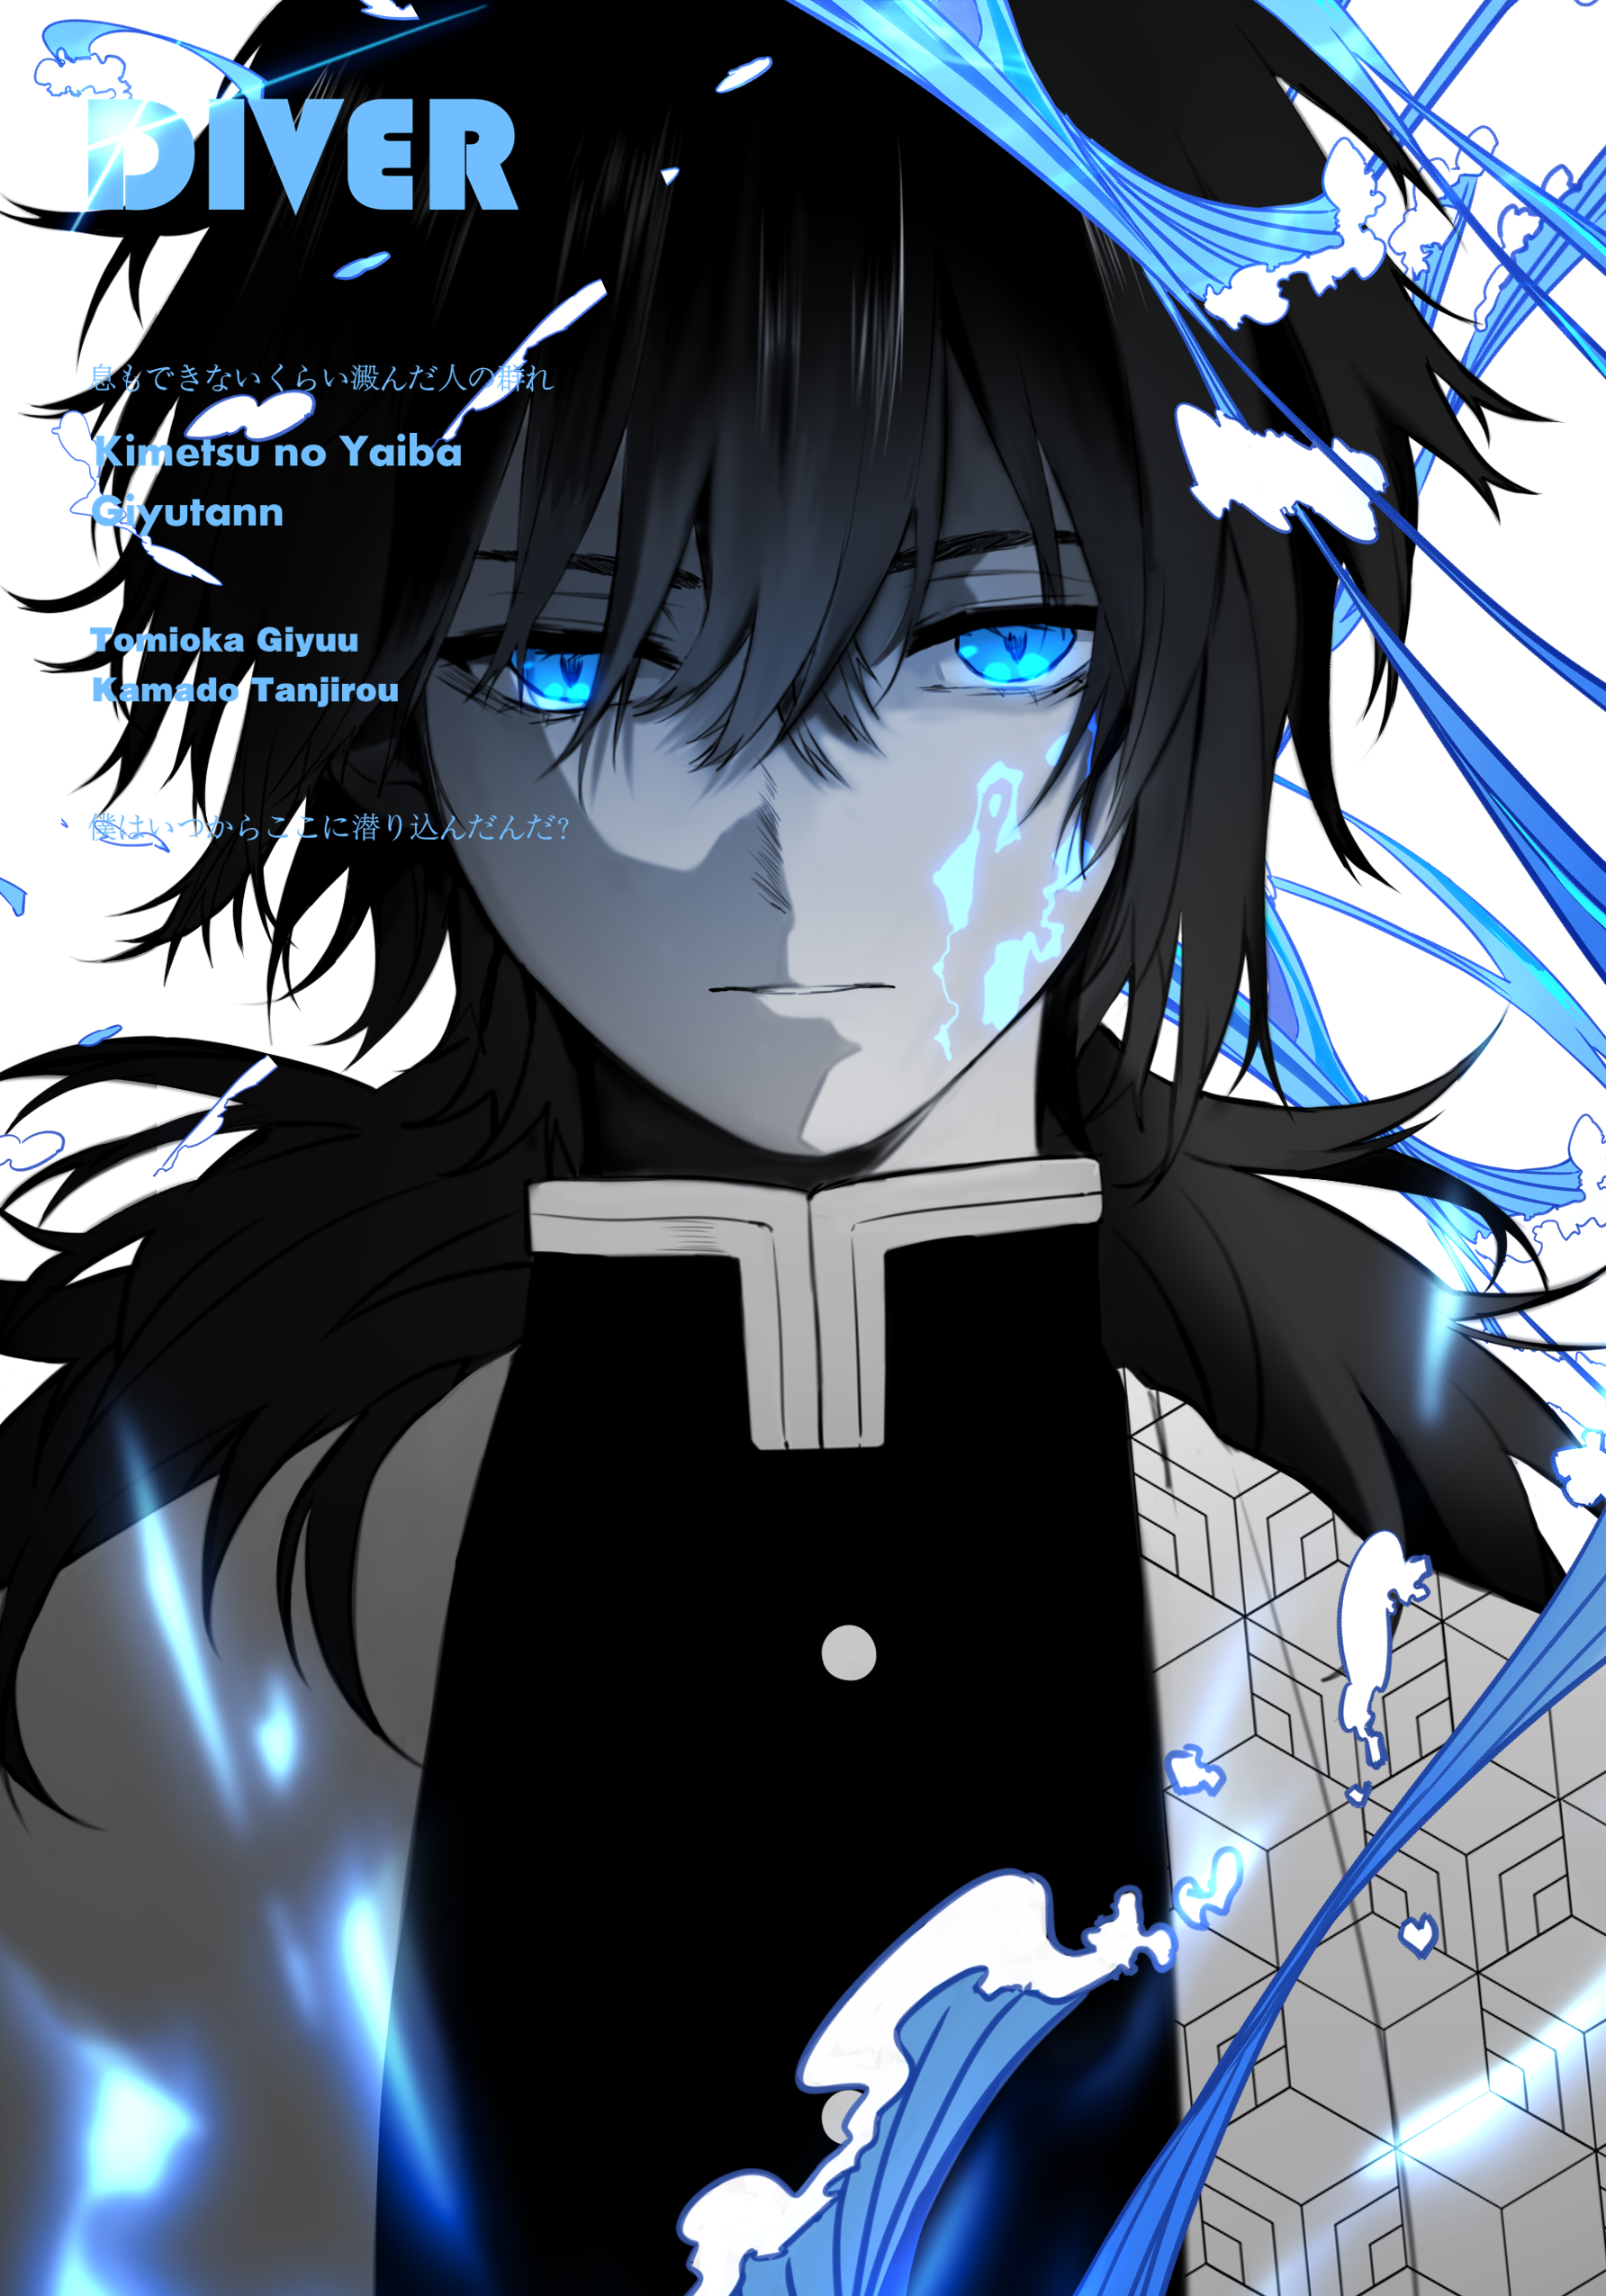 Safebooru 1boy Absurdres Artist Request Bangs Black Hair Blue Eyes Character Name Collar Copyright Black Hair Blue Eyes Anime Background Anime Images